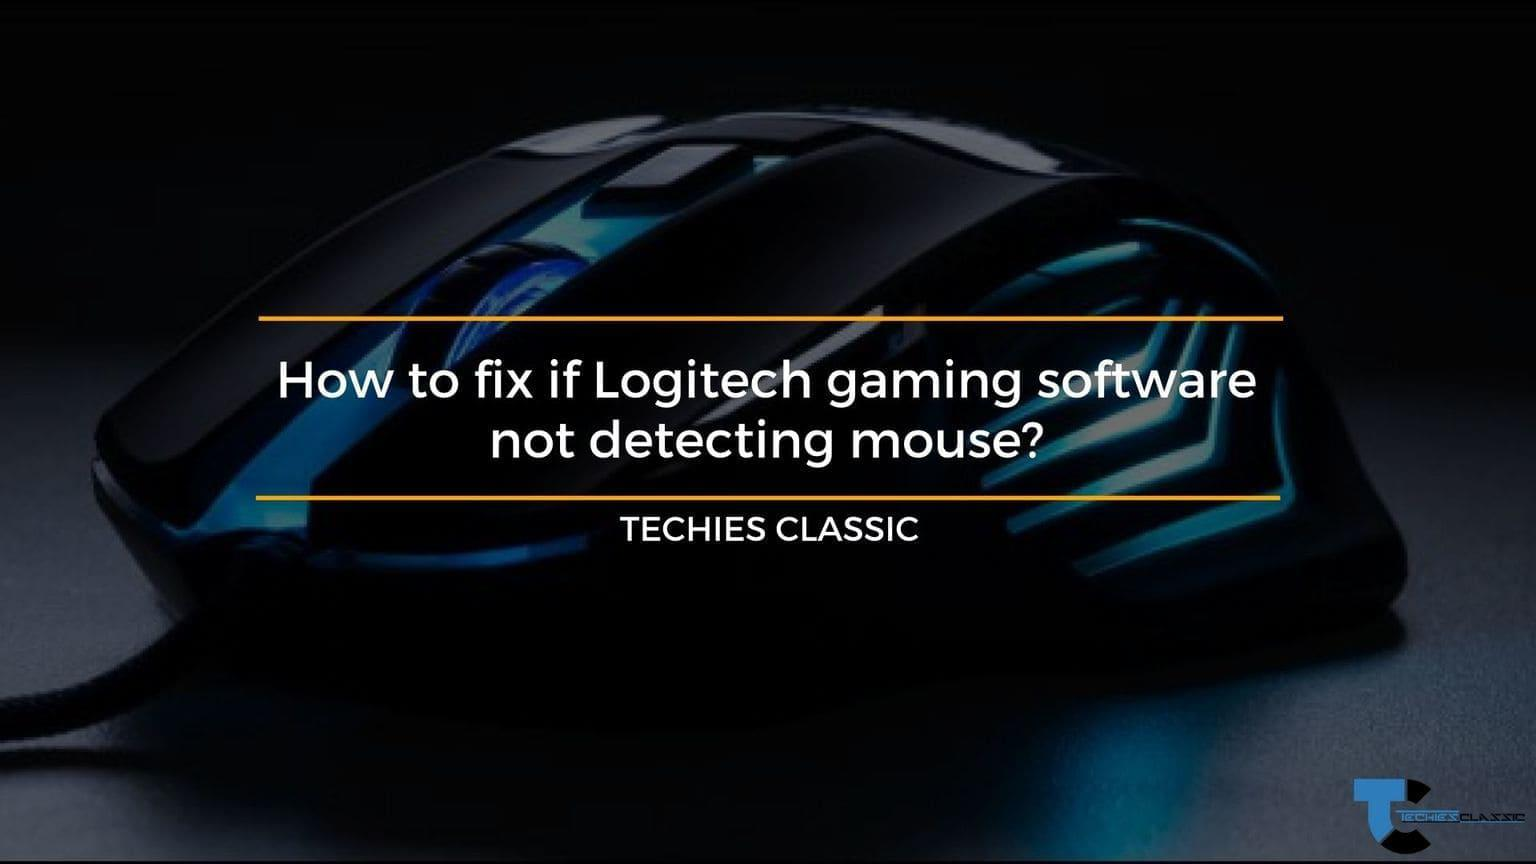 How to fix if Logitech gaming software not detecting mouse